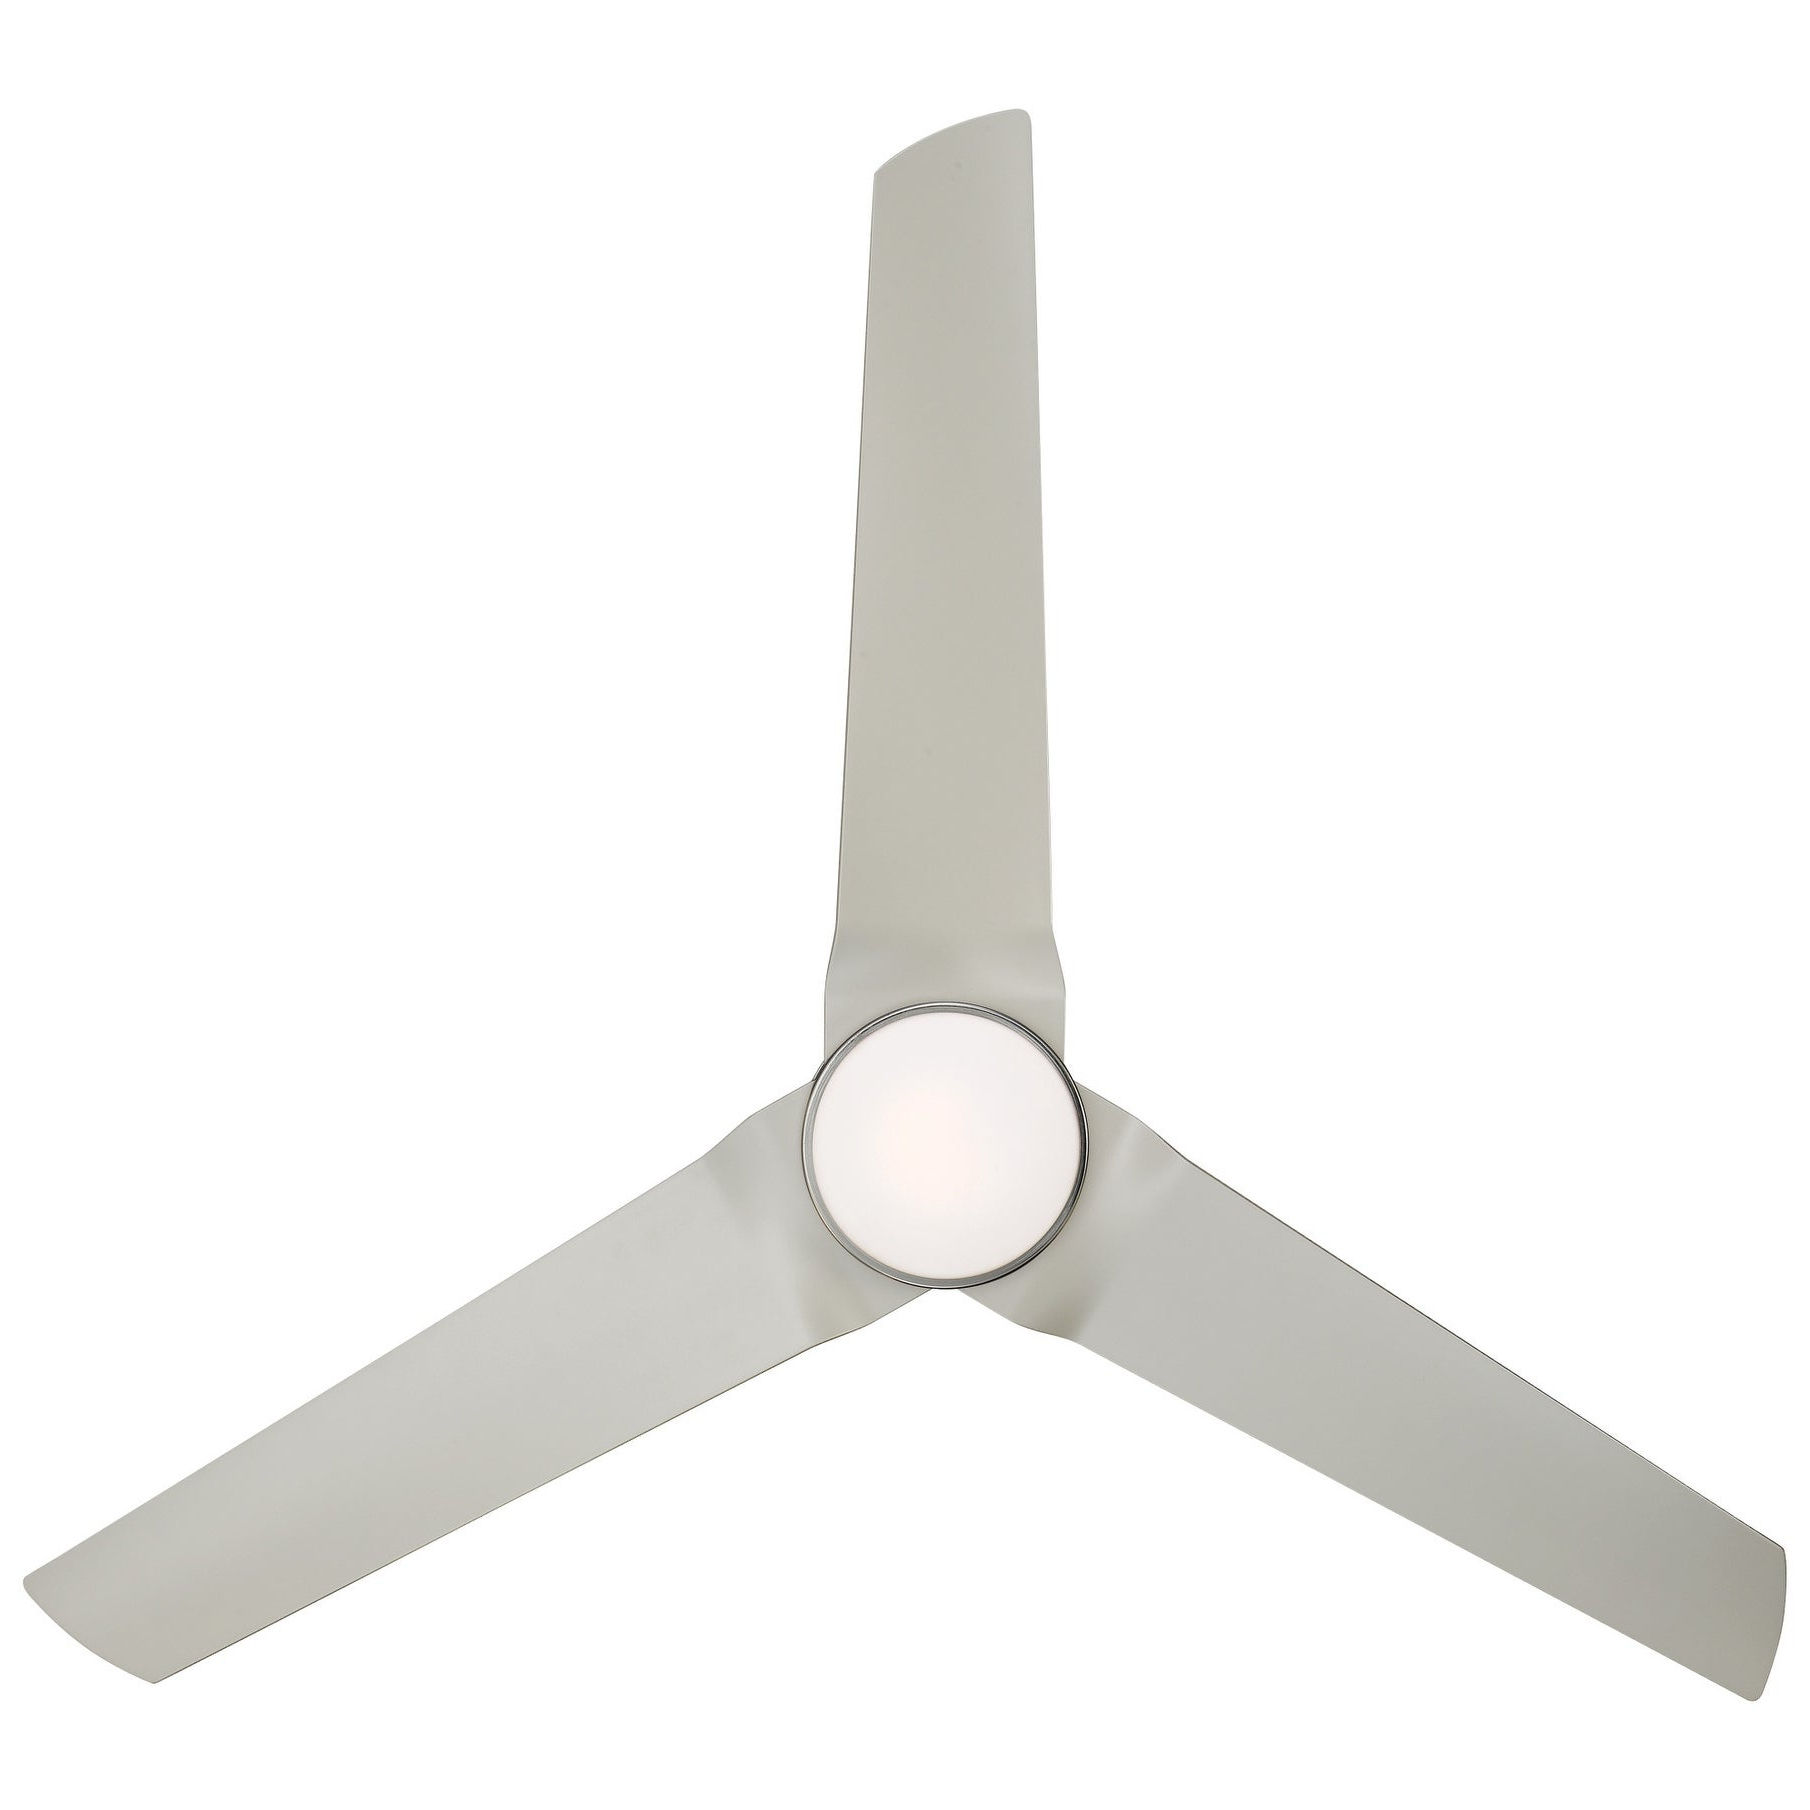 "Minkaaire Java Led Java 54"" 3 Blade Indoor / Outdoor Led Ceiling Fan With  Remote Included In Recent Java 3 Blade Outdoor Led Ceiling Fans (View 13 of 20)"